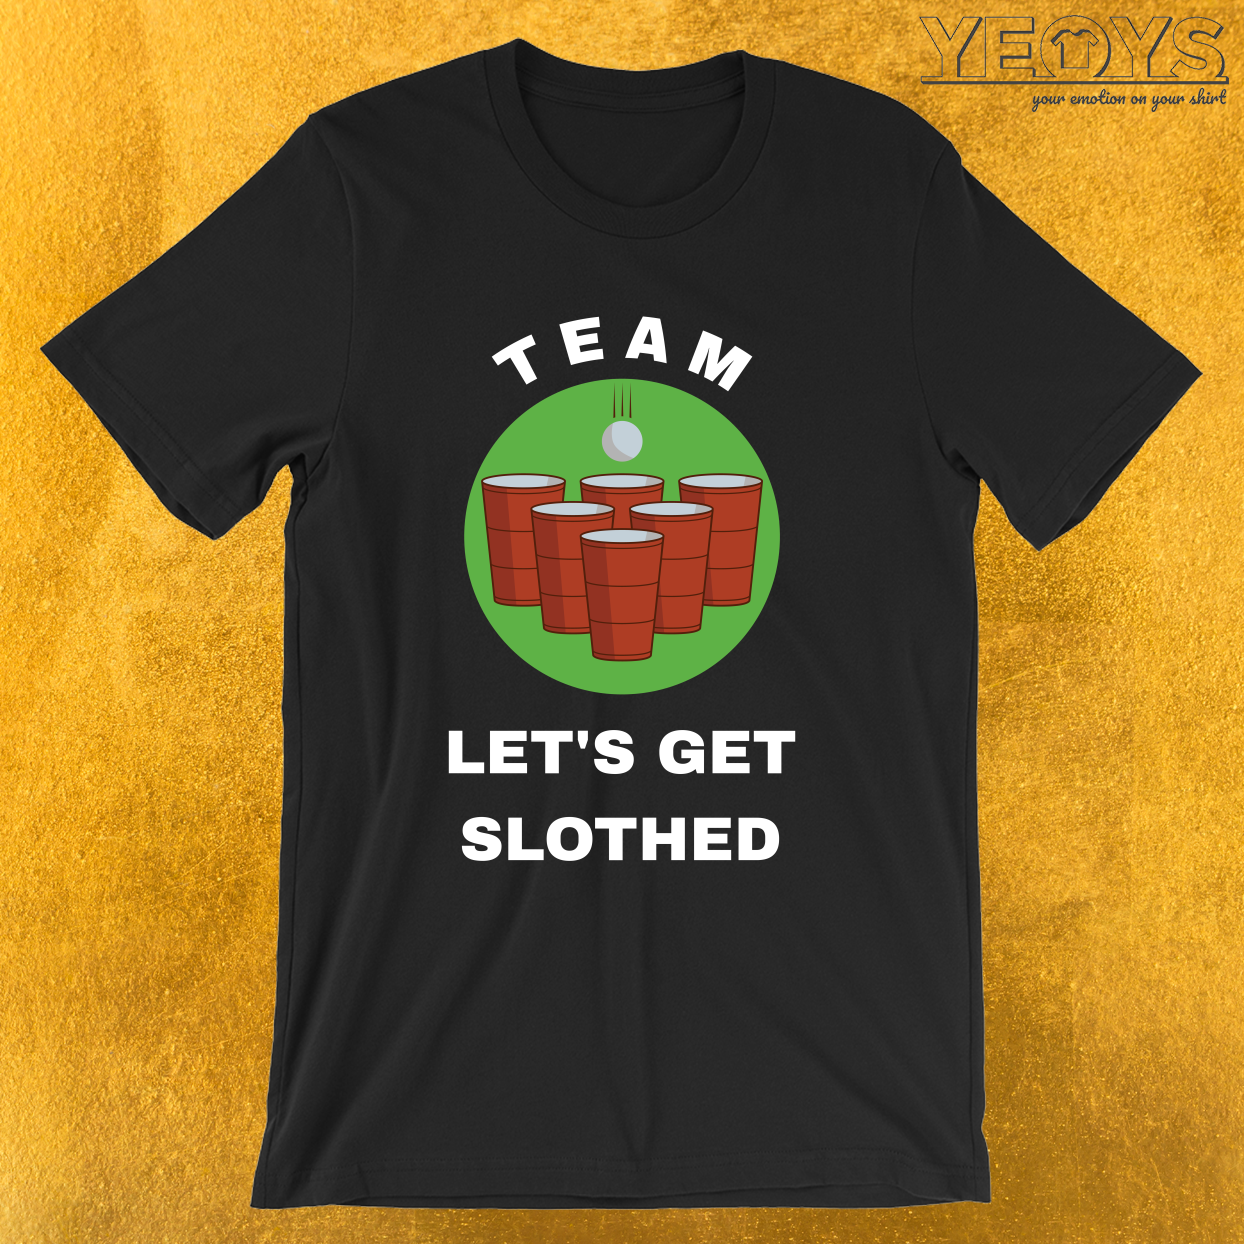 USA Beer Pong Team – Team Let's Get Slothed Tee